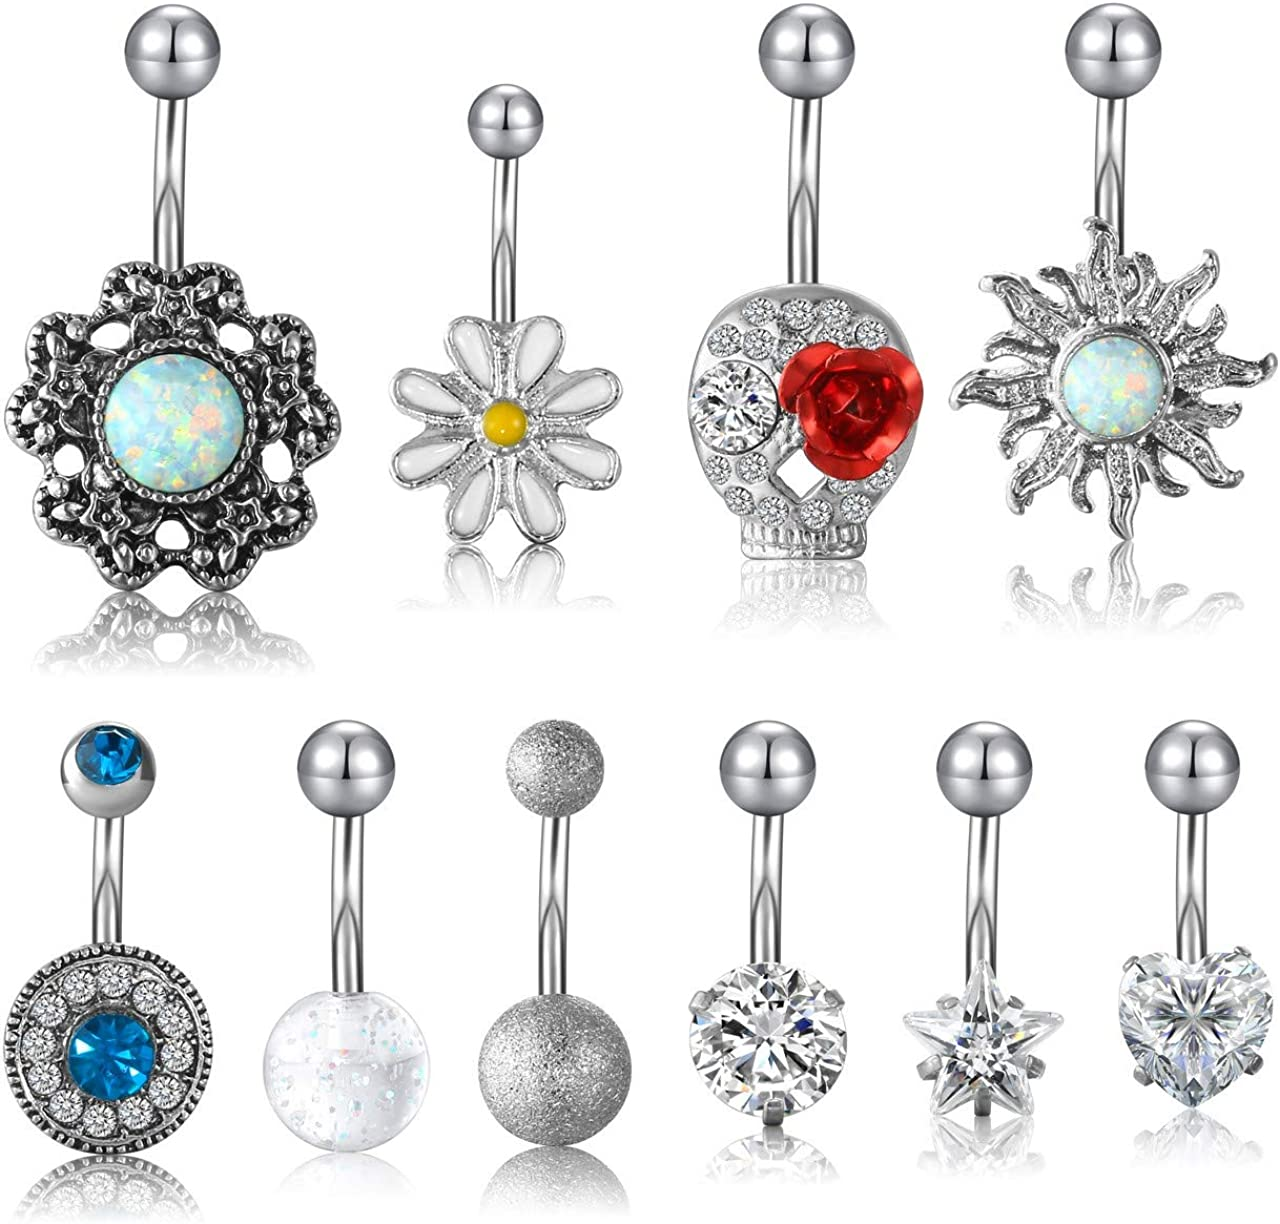 PiercingJ 10pcs 14G Stainless Steel Dangle Belly Button Rings for Women Sparkle Cubic Zirconia Crystal Navel Rings Body Piercing Jewelry